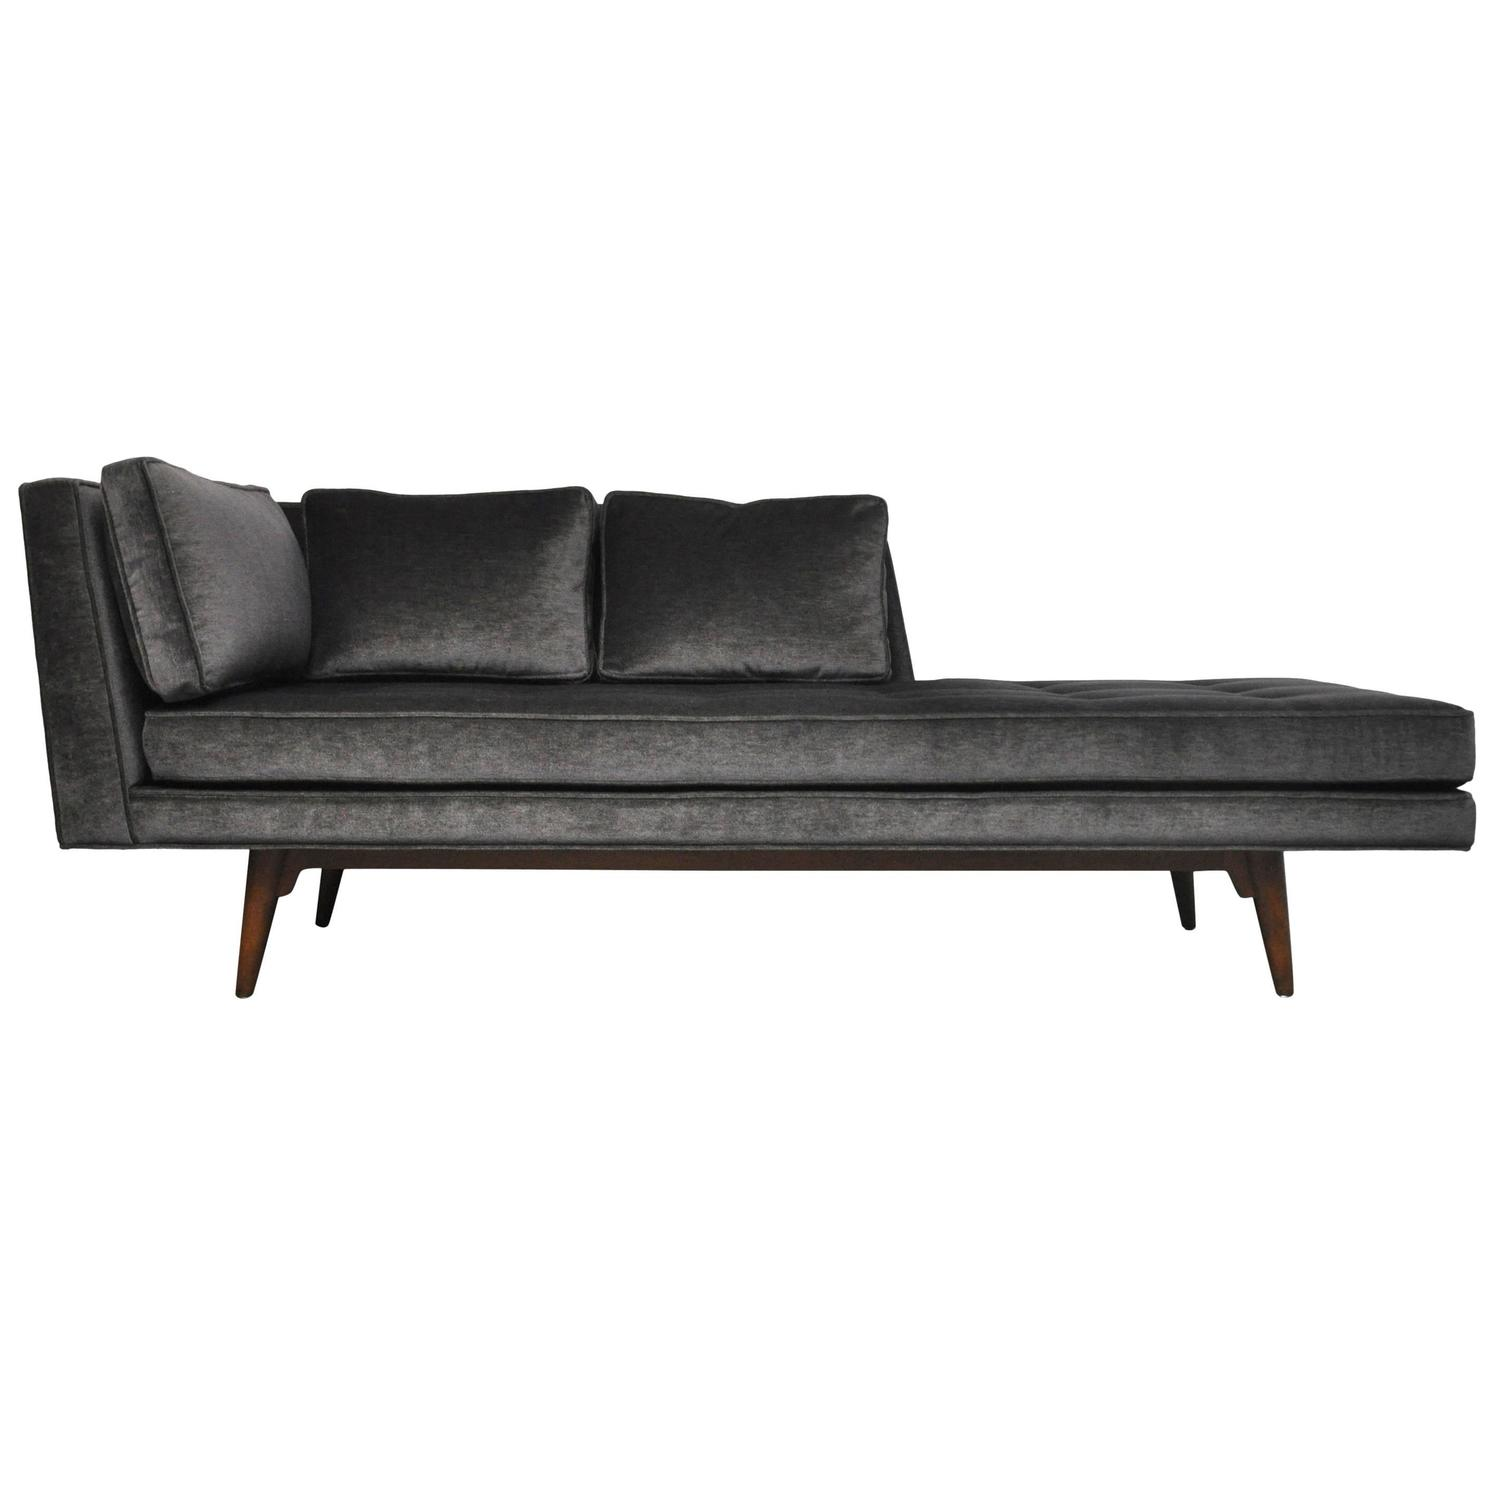 Permalink to Amazing 30  Left Arm Chaise Lounge